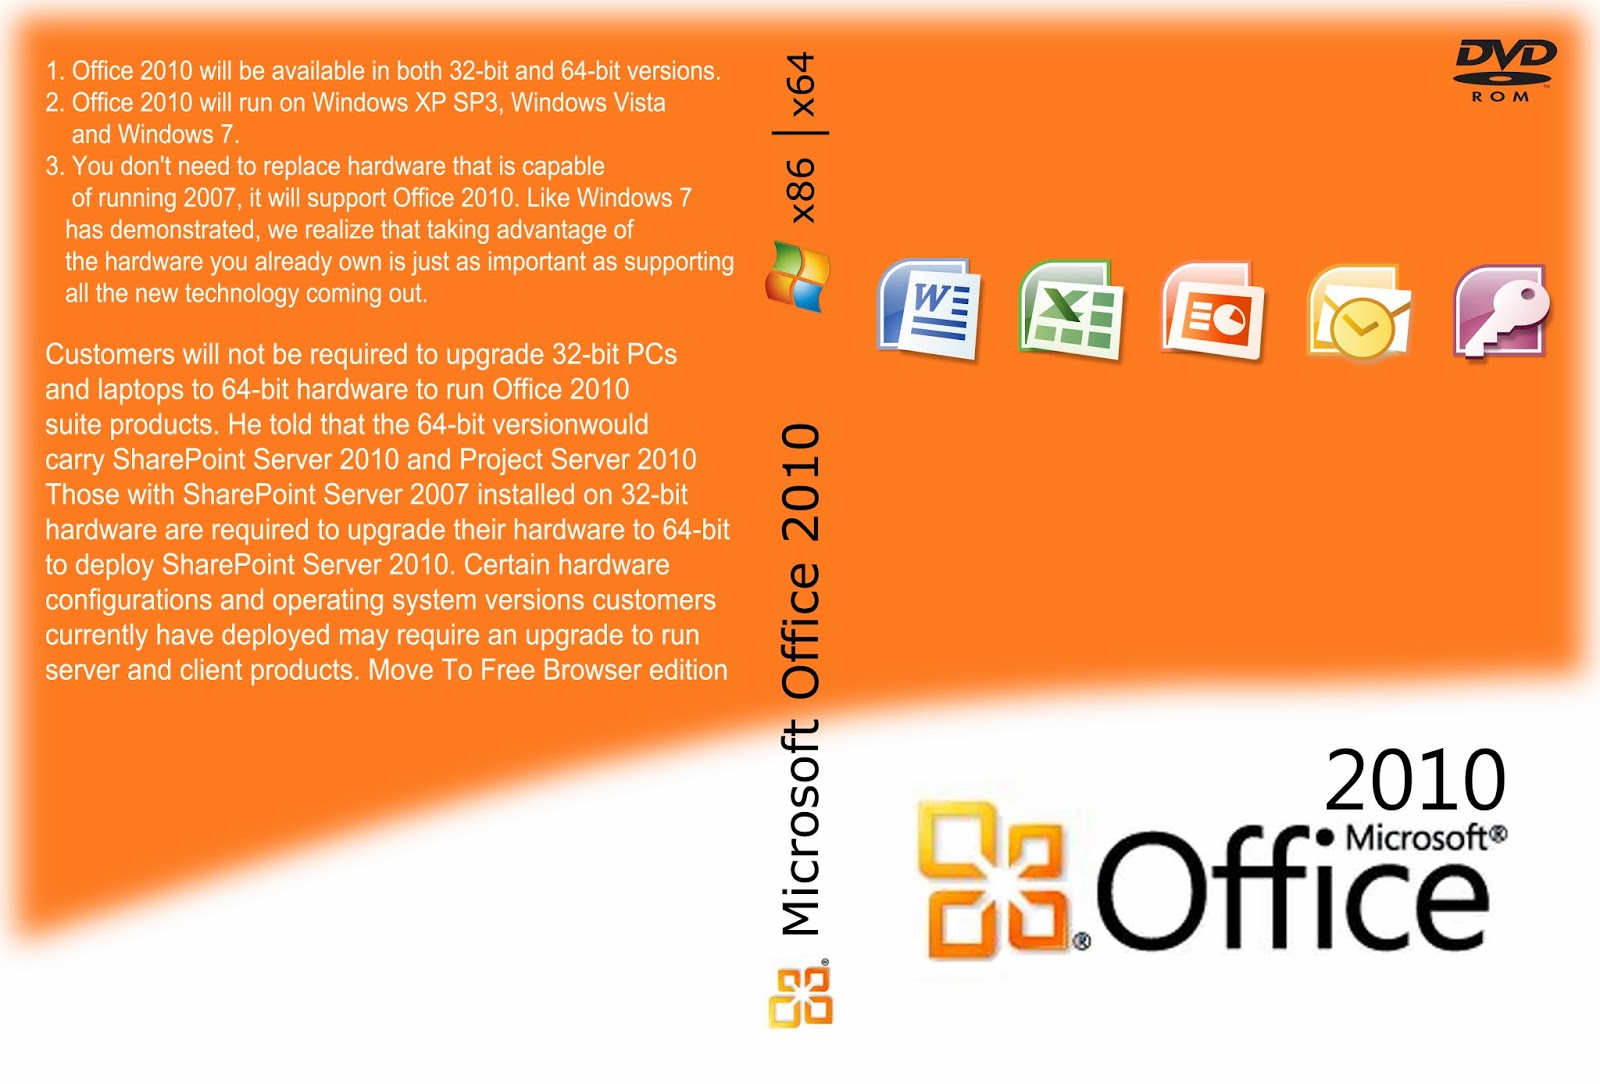 ms office full version free download for windows 7 32 bit